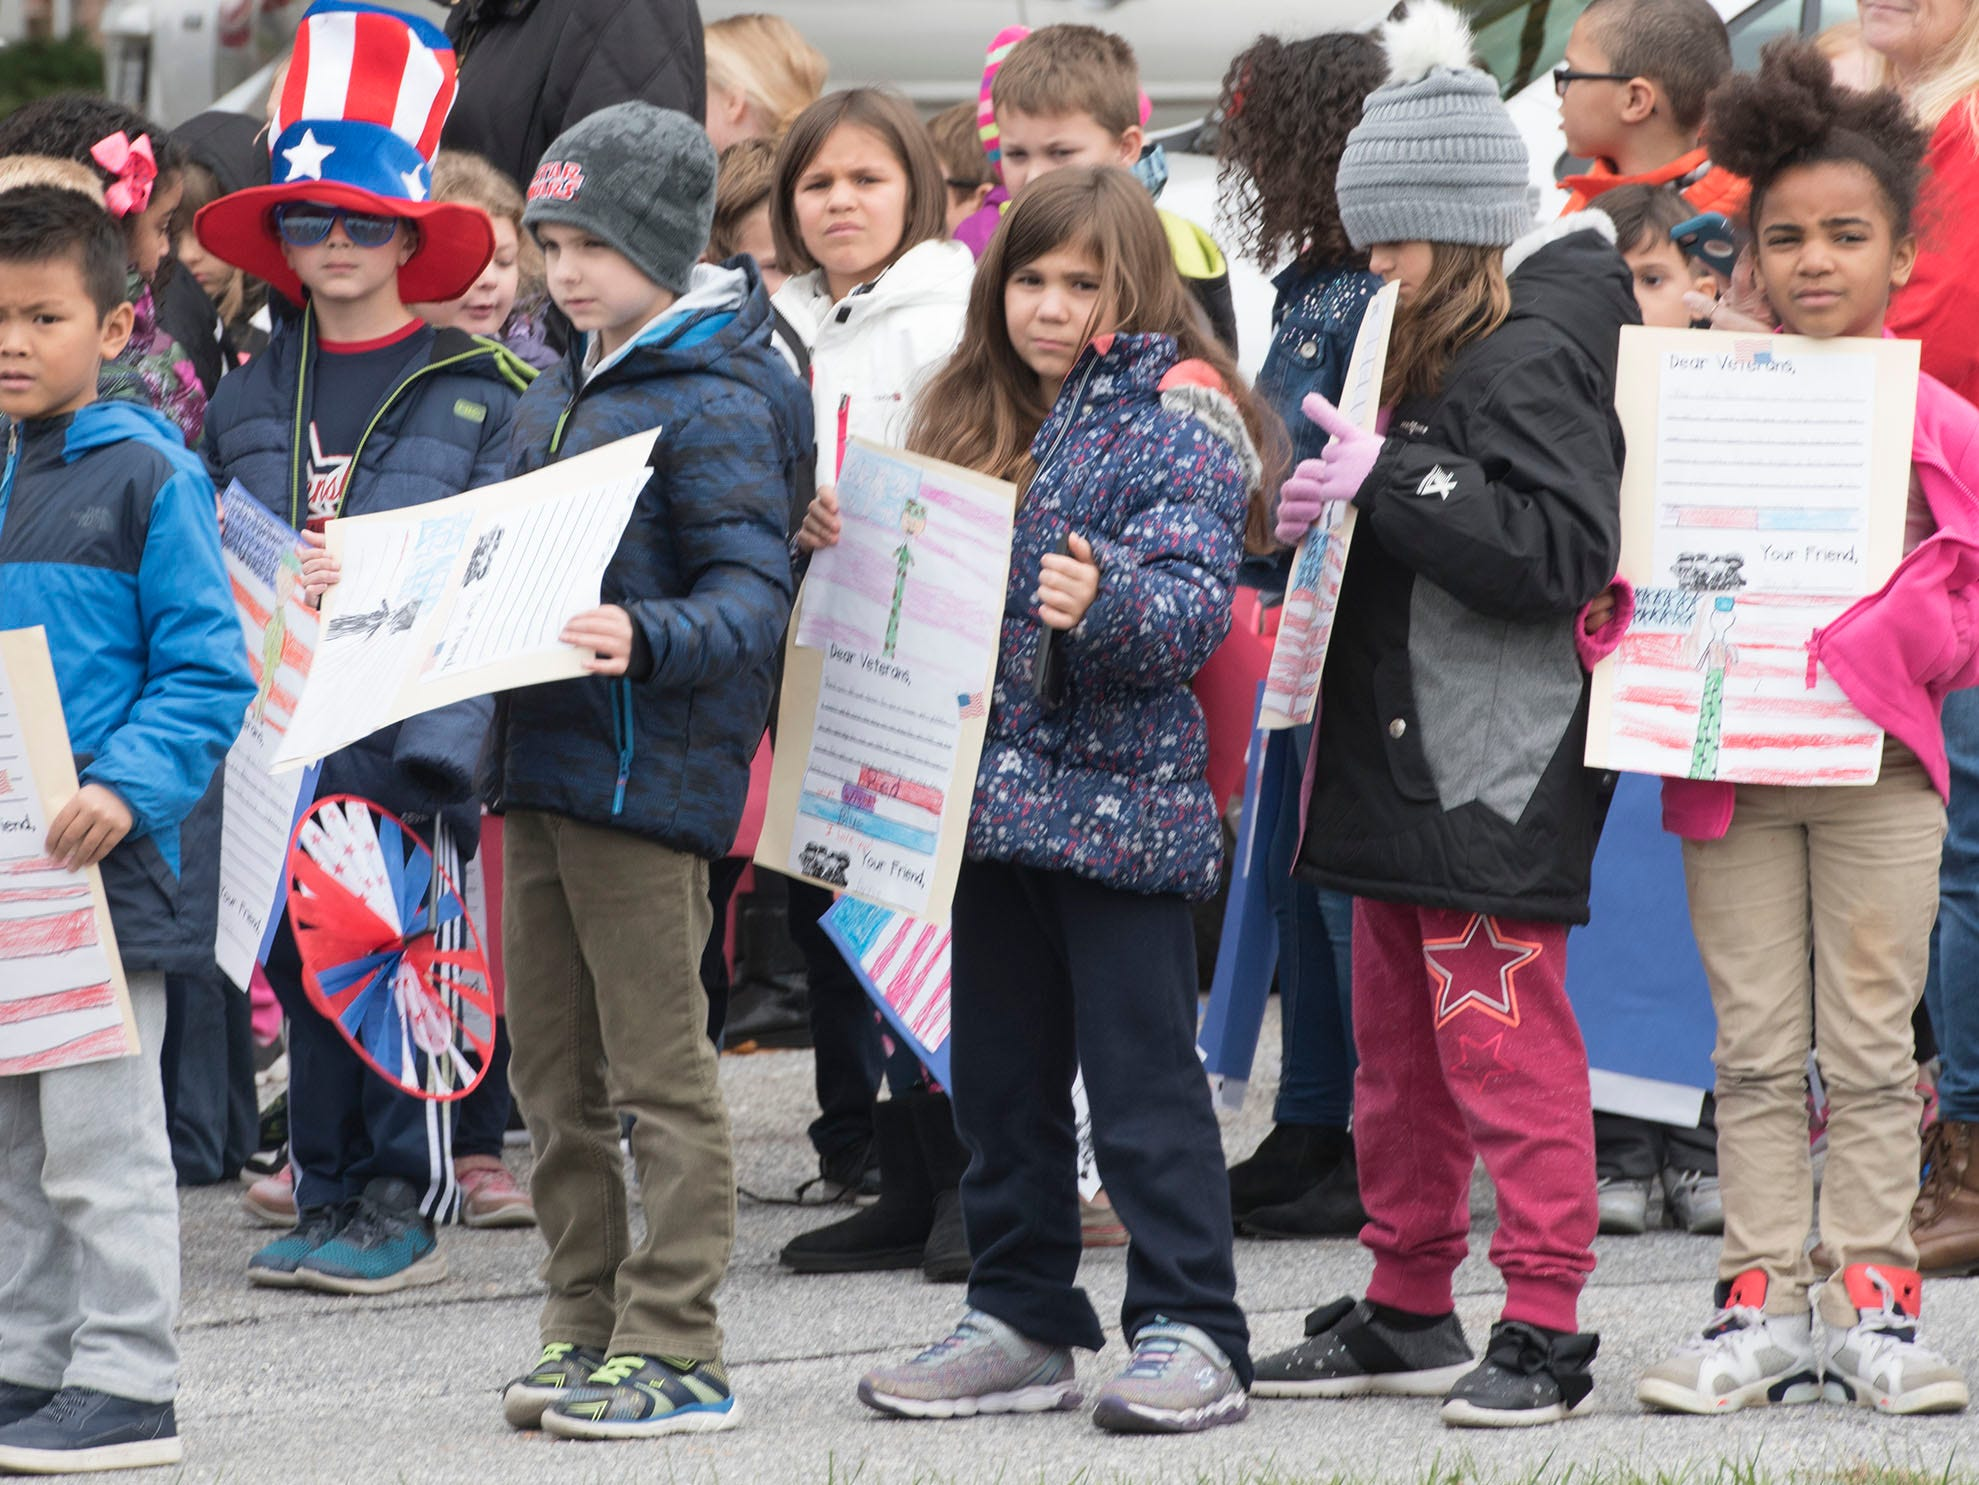 Students prepare to walk during a Veterans Day Parade sponsored by James Burd Elementary School, Shippensburg. Last year, Burd hosted its own parade because the Shippensburg parade was canceled. Now the event is becoming a tradition.